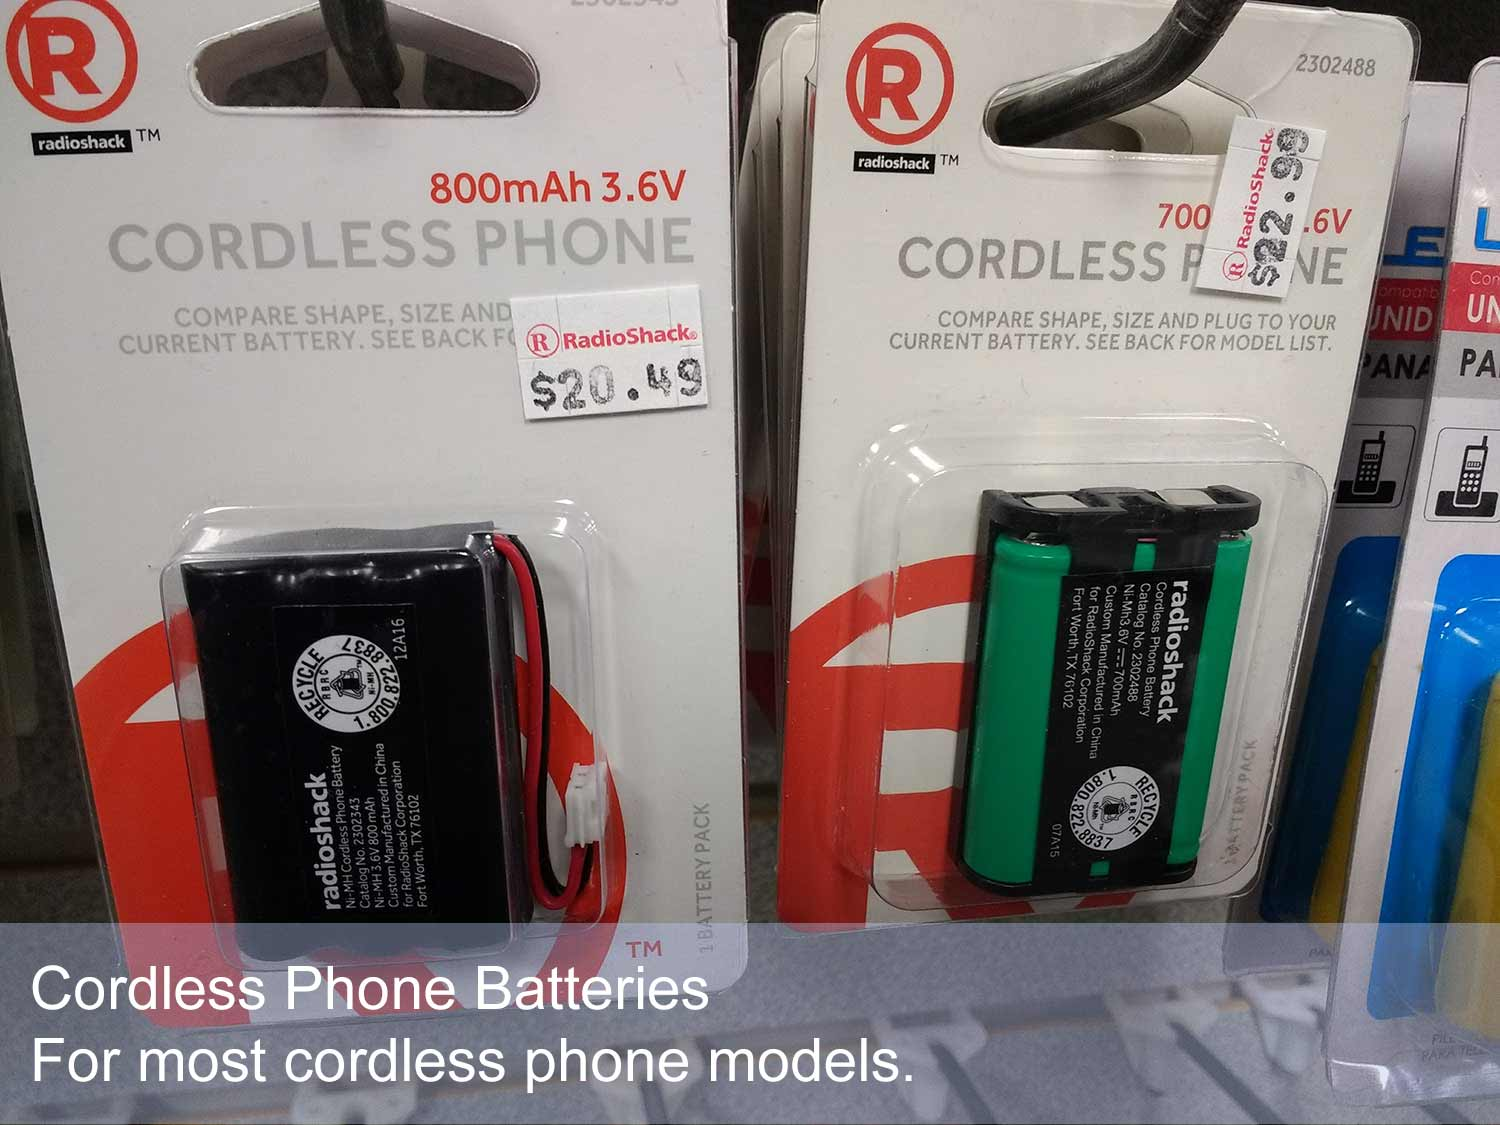 Our battery selection for cordless phones powers most models.